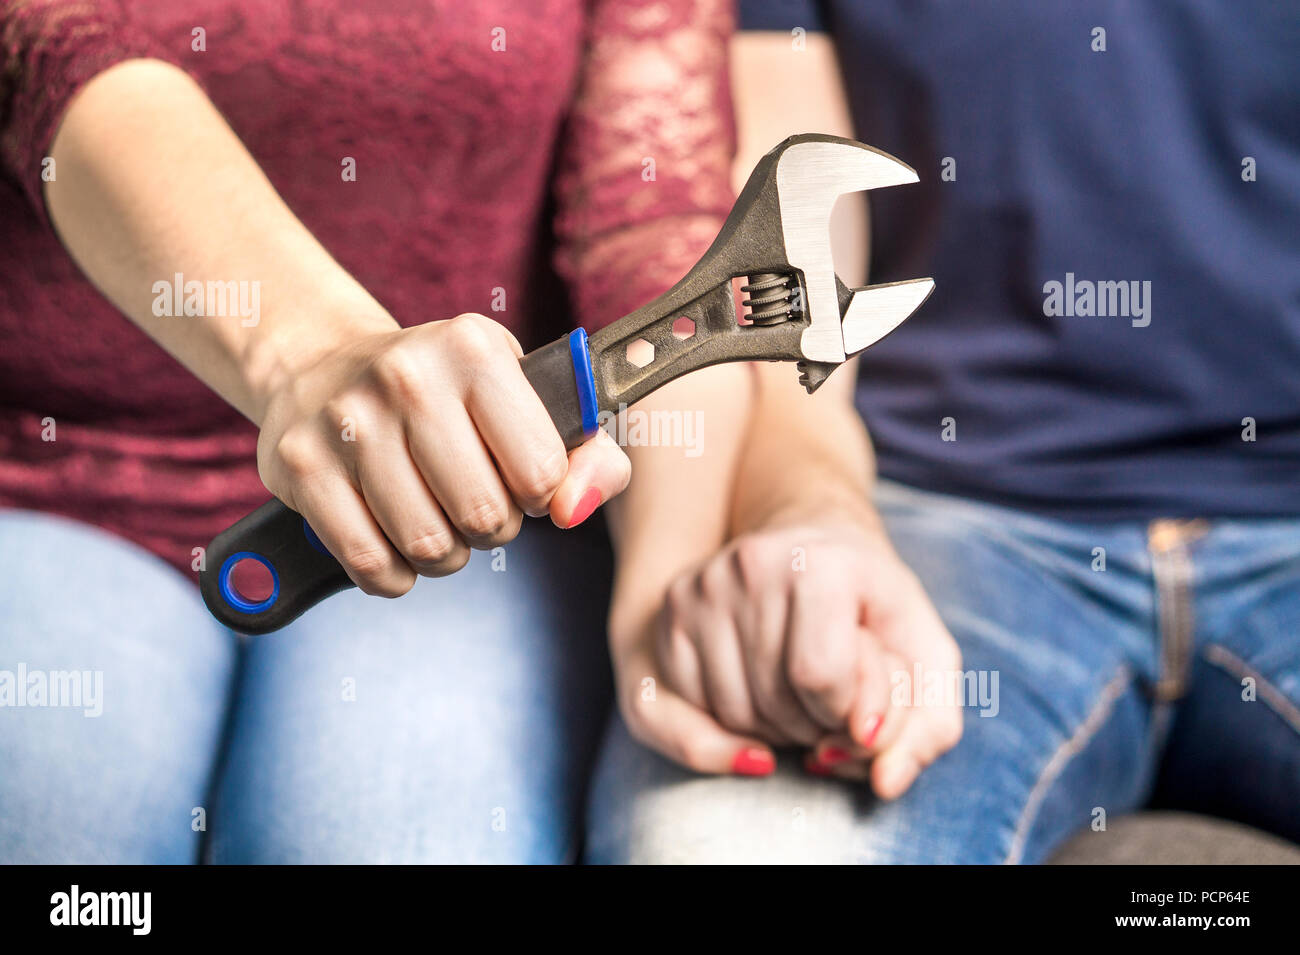 Fixing relationship problems concept. Couple holding hands in therapy and counselling session. Woman or wife showing a tool and wrench. - Stock Image